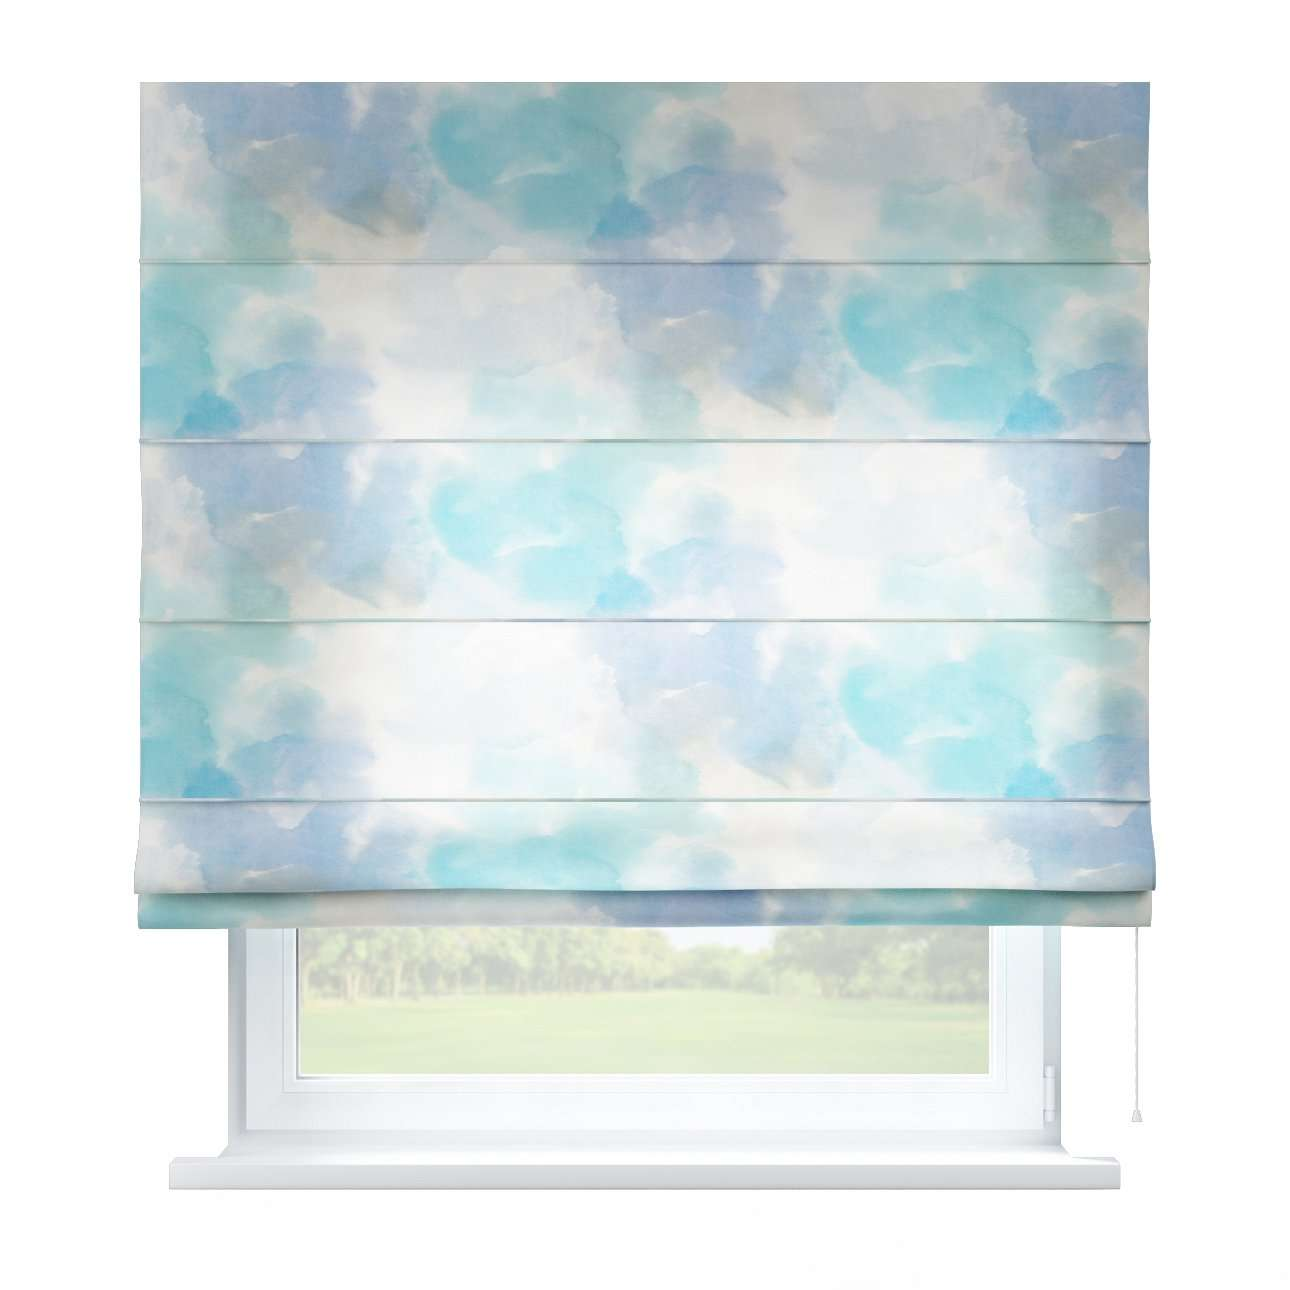 Capri roman blind 80 x 170 cm (31.5 x 67 inch) in collection Aquarelle, fabric: 140-67